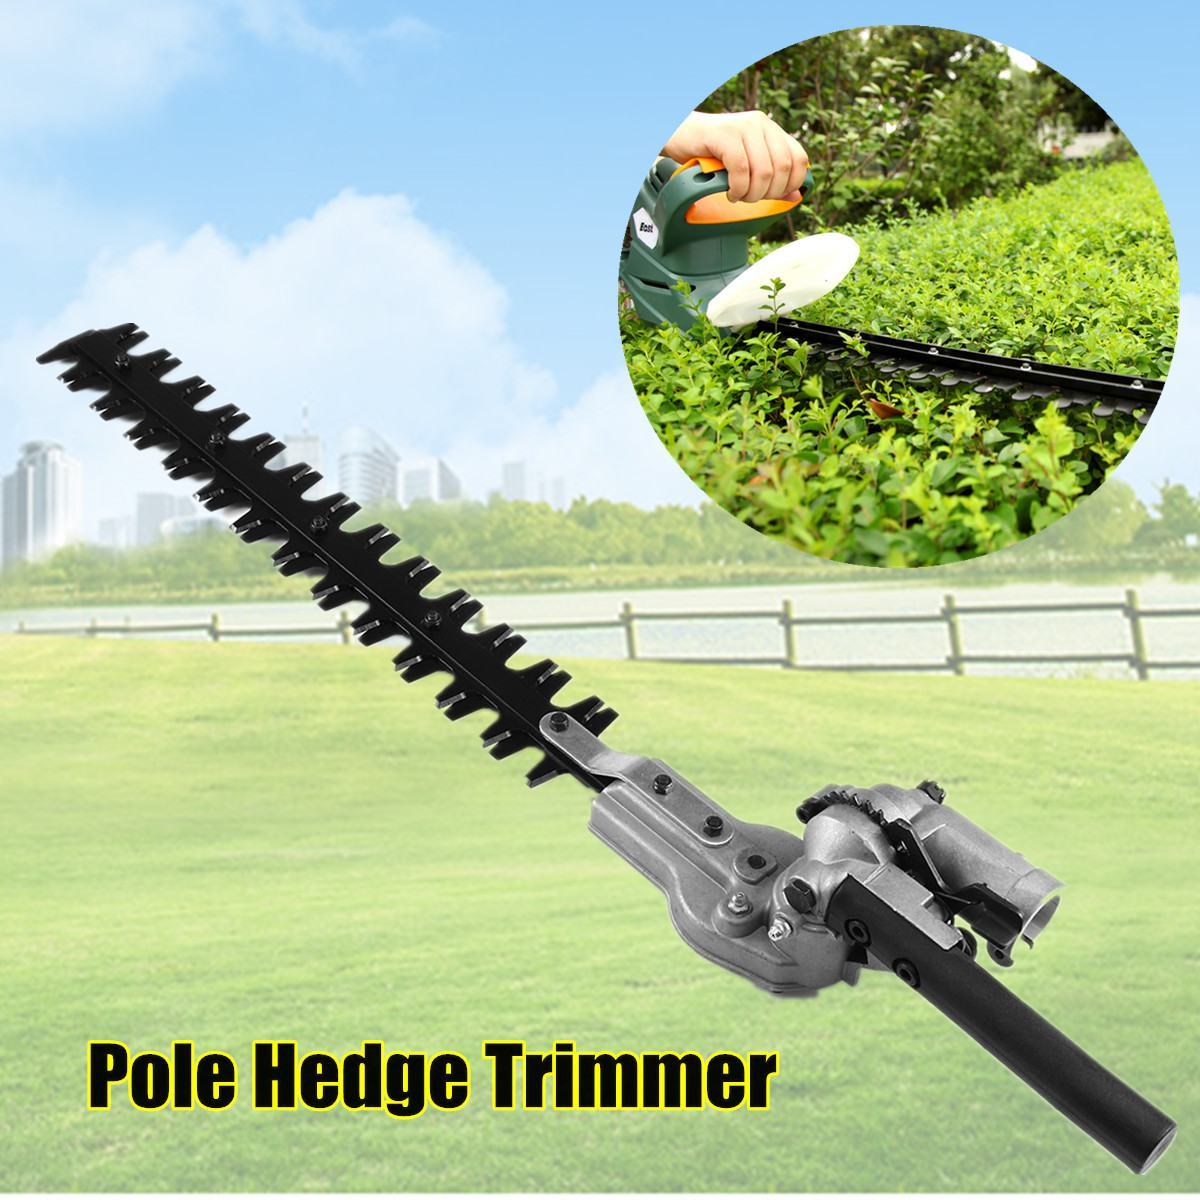 7 Tooth Pole Hedge Trimmer Electric Cutting Machine Household Lawn Mower Saw Cutter Garden Tools Power Tool Accessories